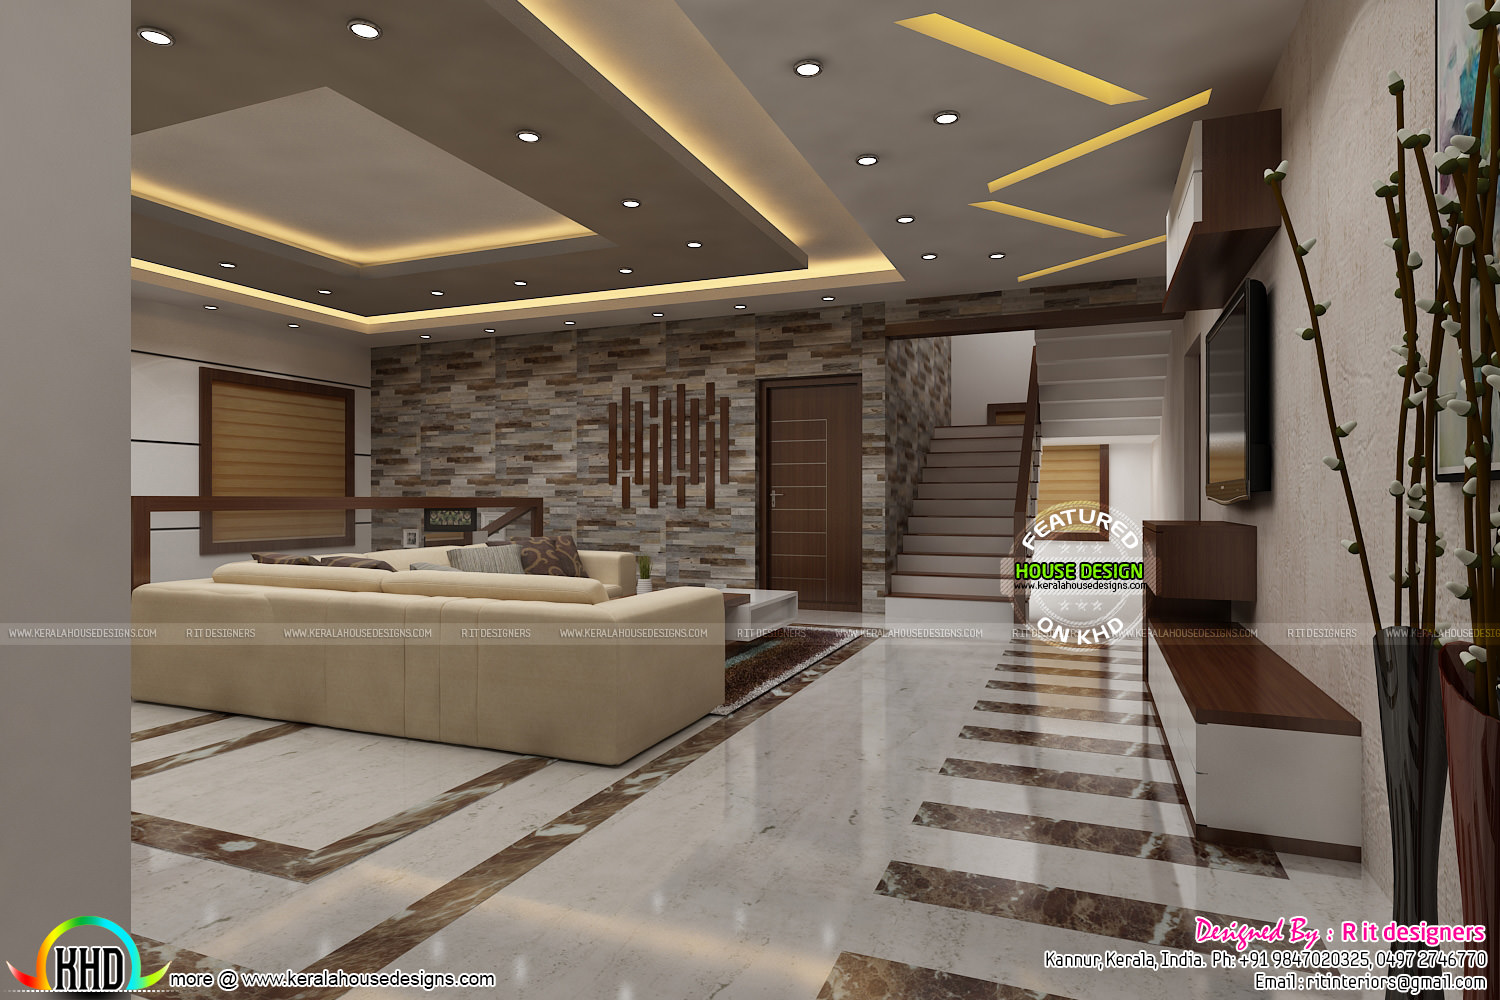 Most modern kerala living room interior kerala home for Kerala home interior